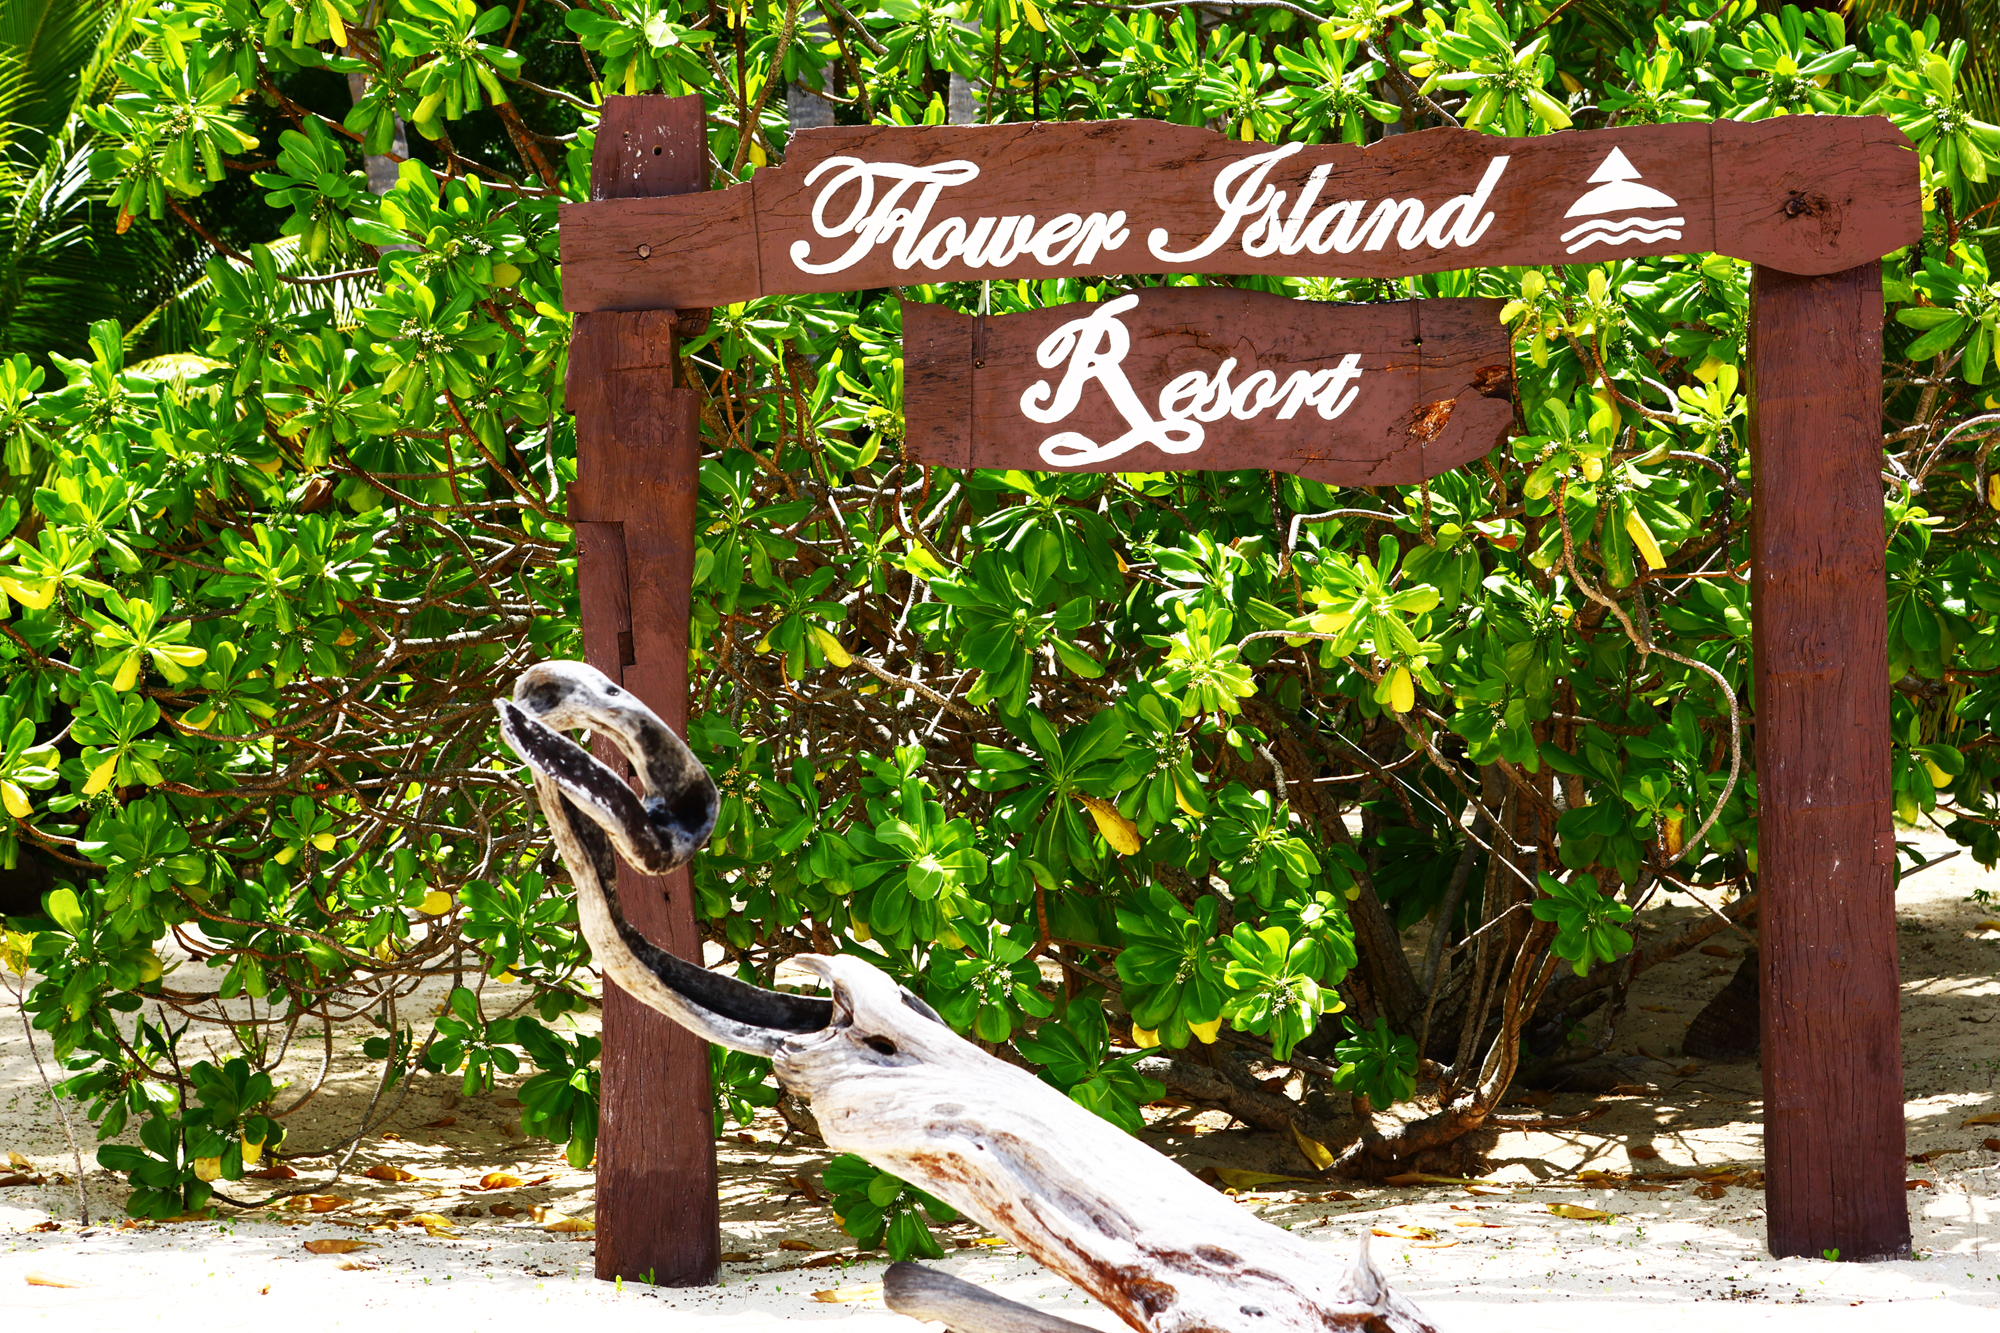 Flower Island Resort 3*